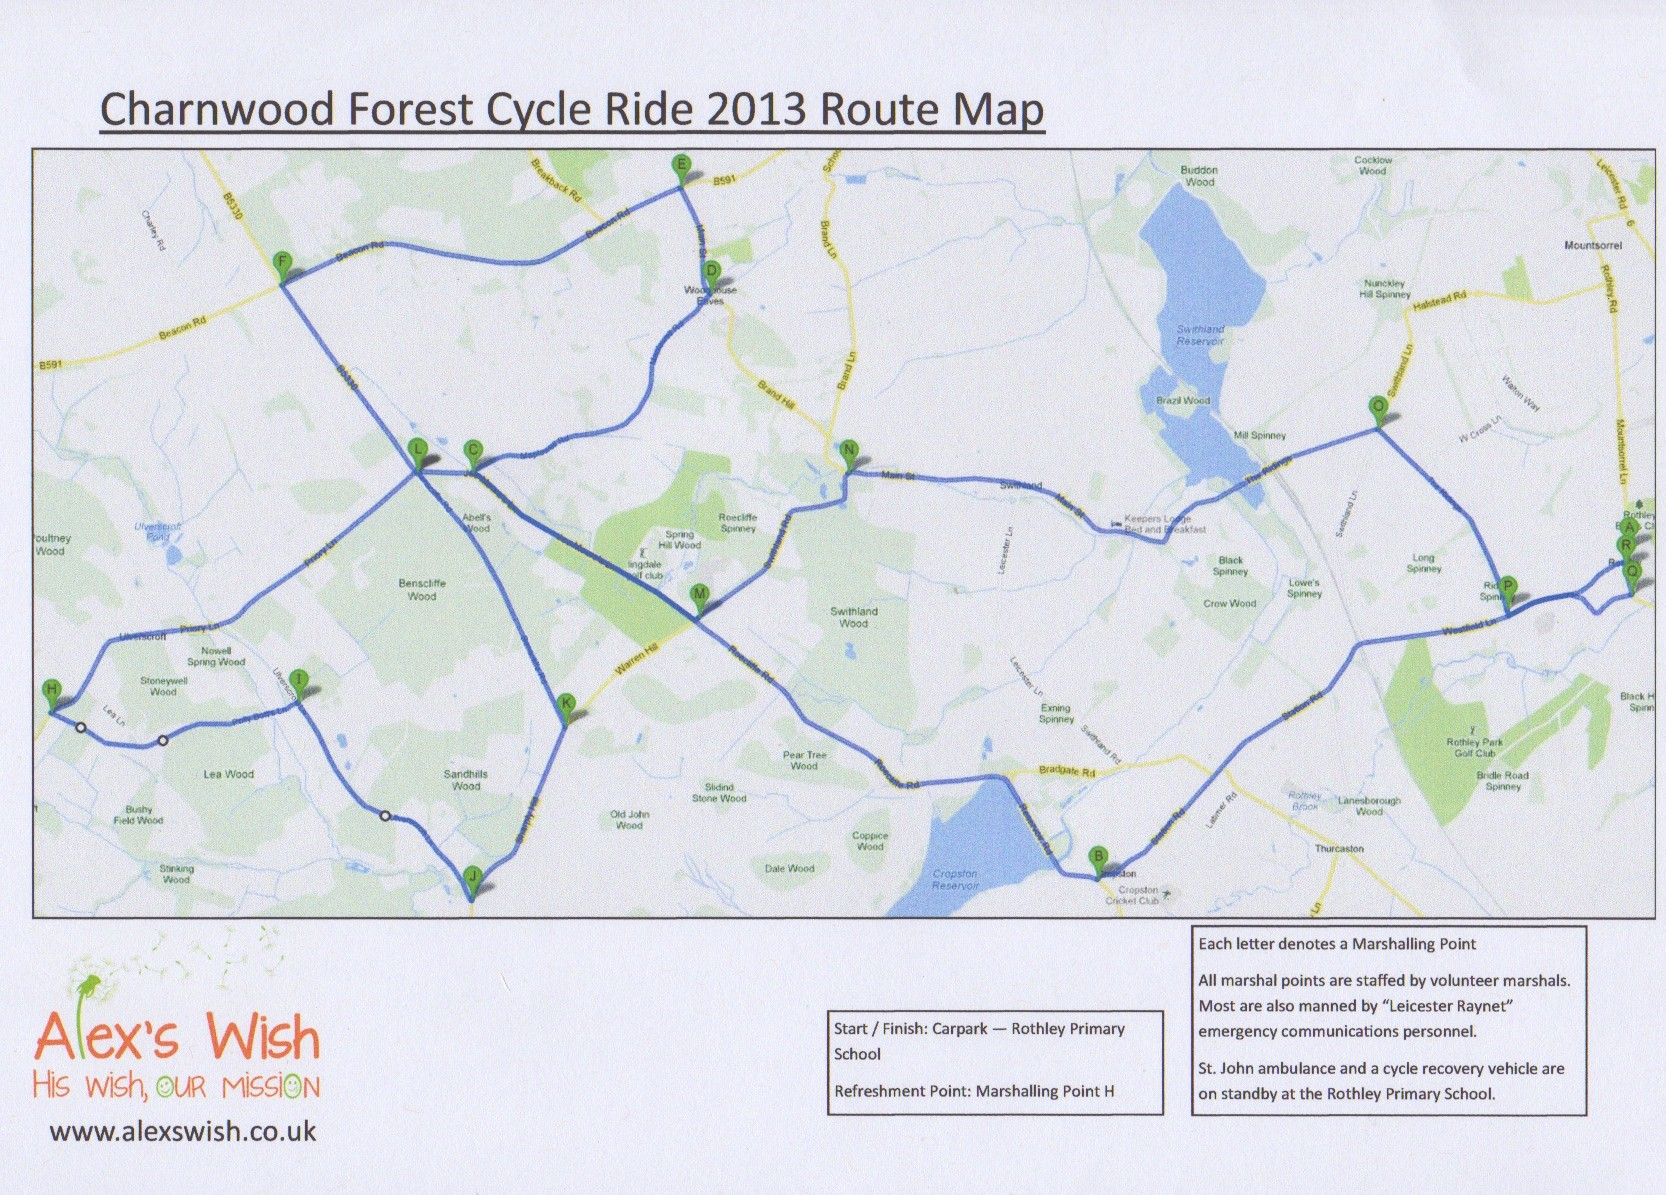 Charnwood Forest Cycle Ride - Route Map